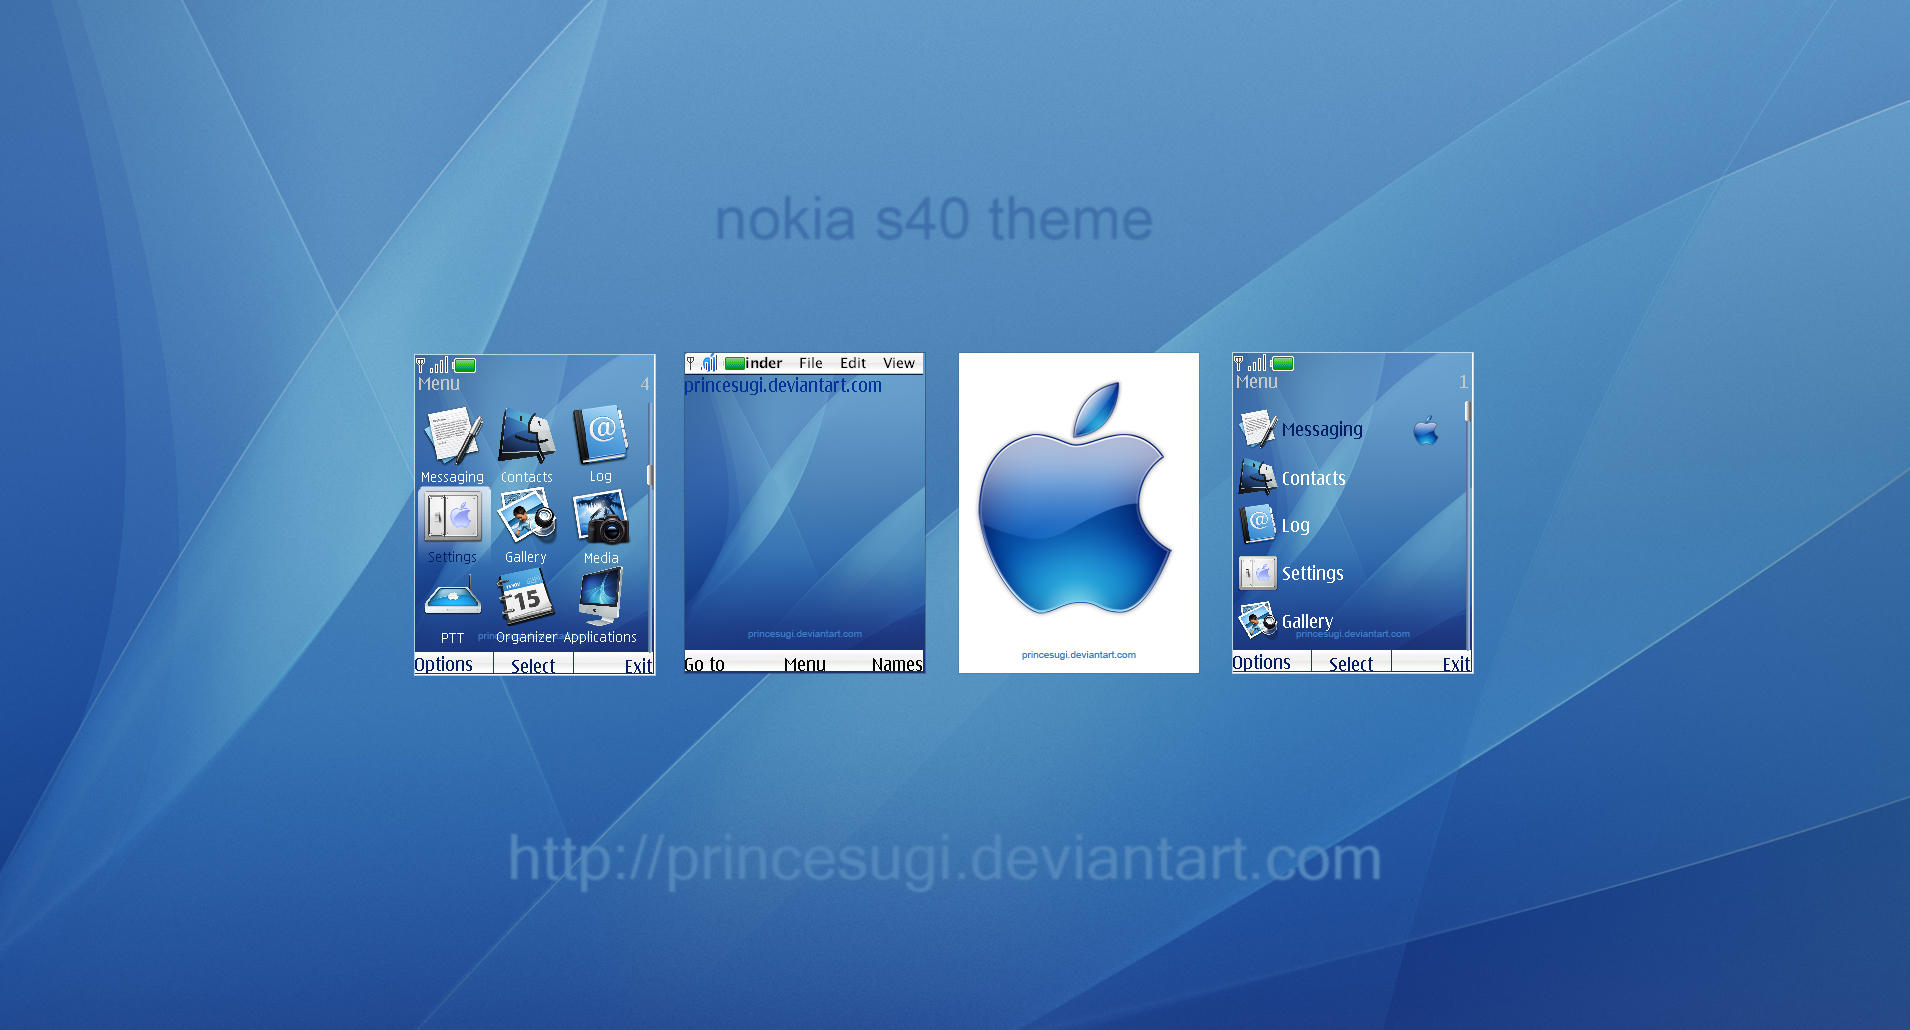 Nokia S40 theme studio 2.2 serial key